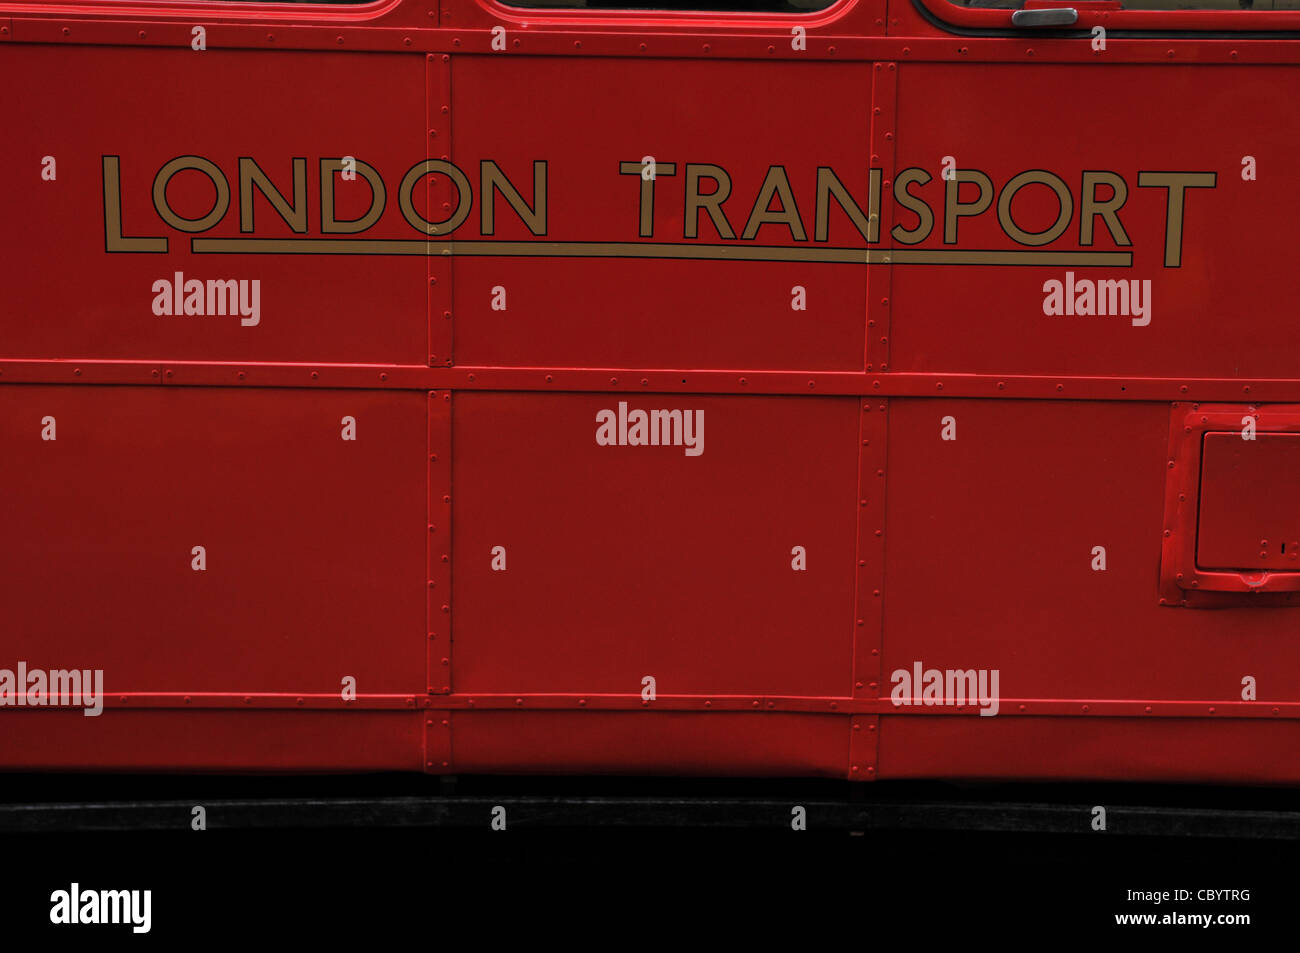 This is the side of a red London Routemaster old bus showing the printing of London transport in gold lettering - Stock Image